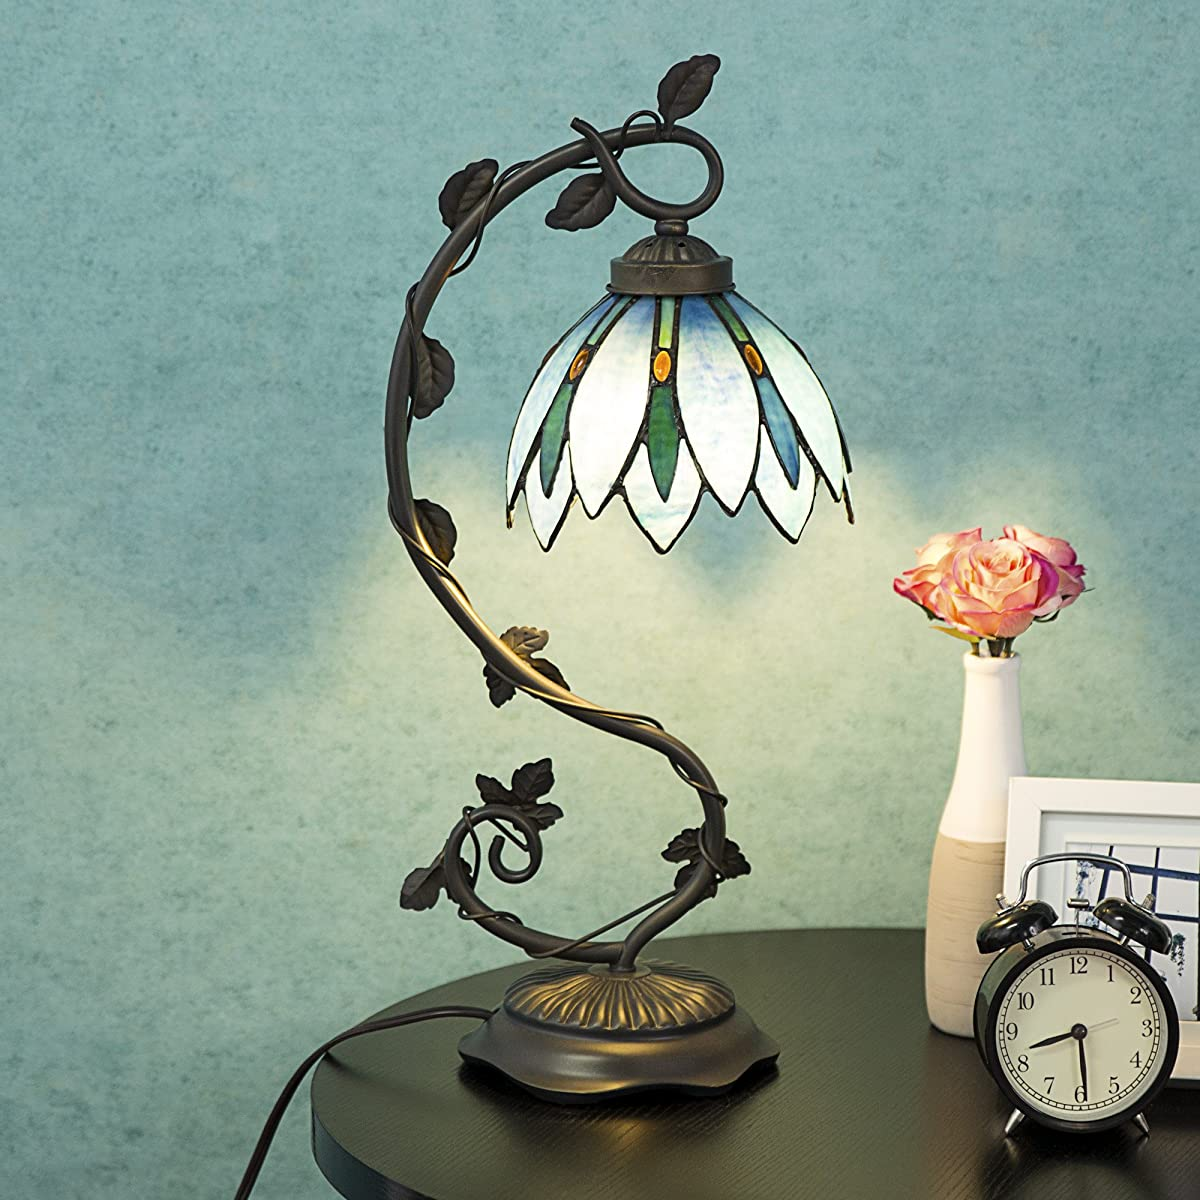 Cloud mountain tiffany style arched table lamp light blue floral tiffany style table lamp light blue floral leaf lotus shape stained glass desk lamp izmirmasajfo